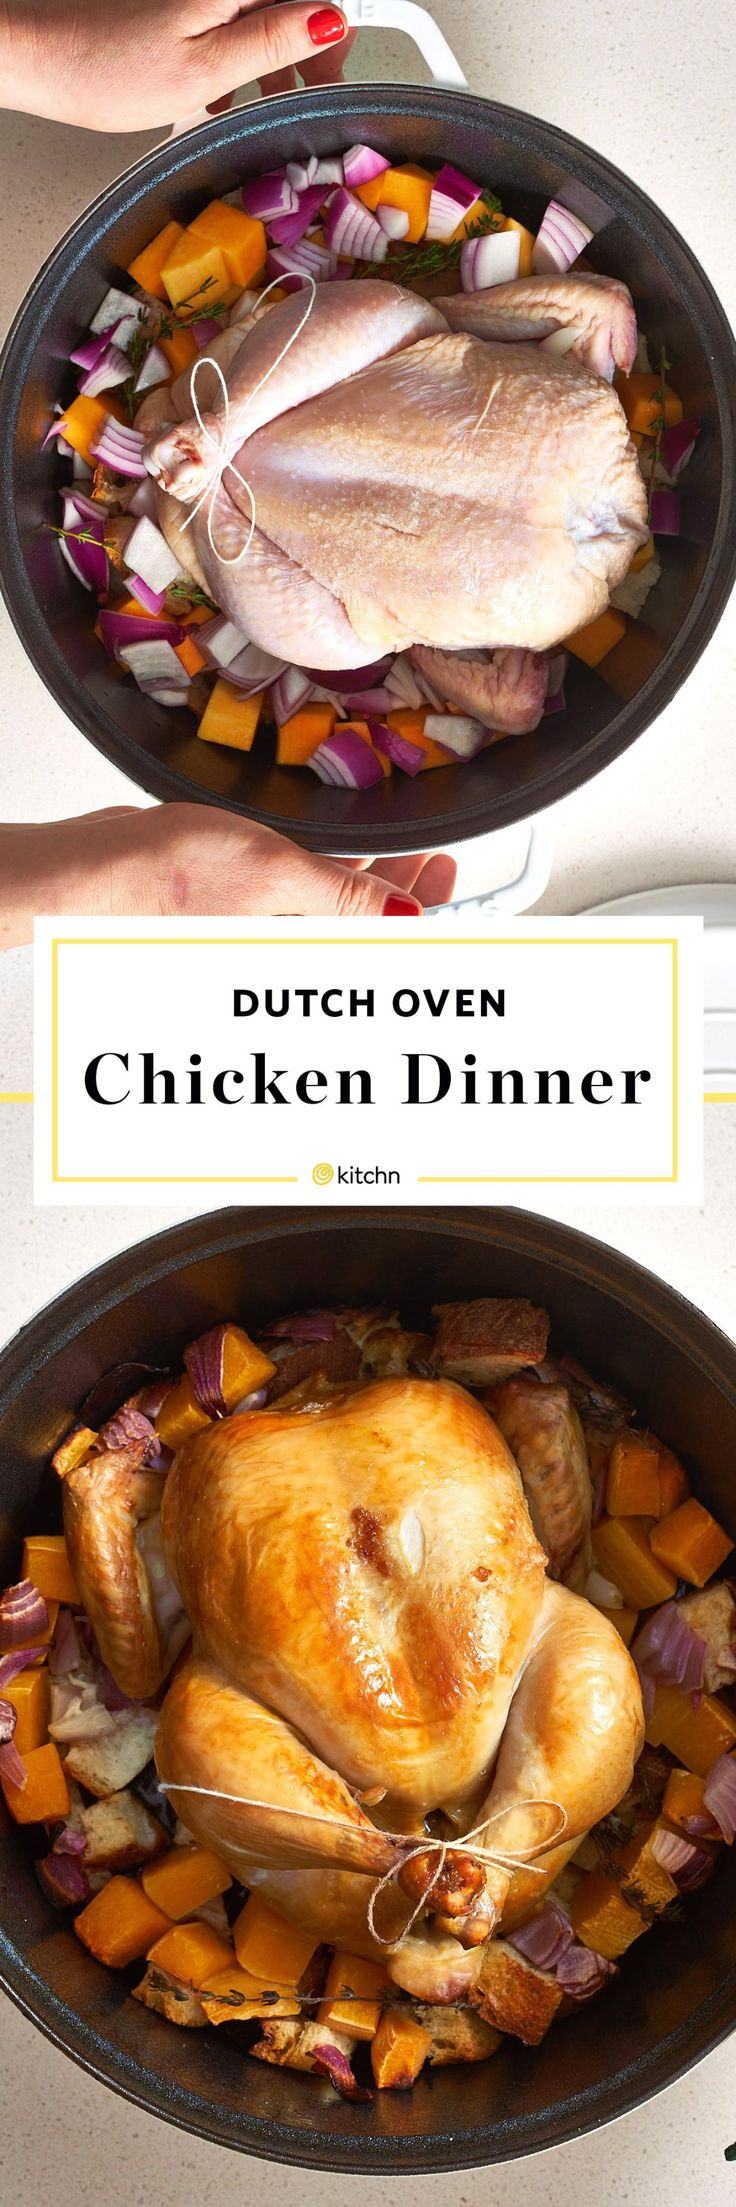 A Whole Roasted / Baked Chicken Dinner in a Dutch Ovens. Looking for easy recipes and ideas for classic comfort foods? Here's how to make a one pot or one dish dinner, including veggies or vegetables for side dishes or sides.